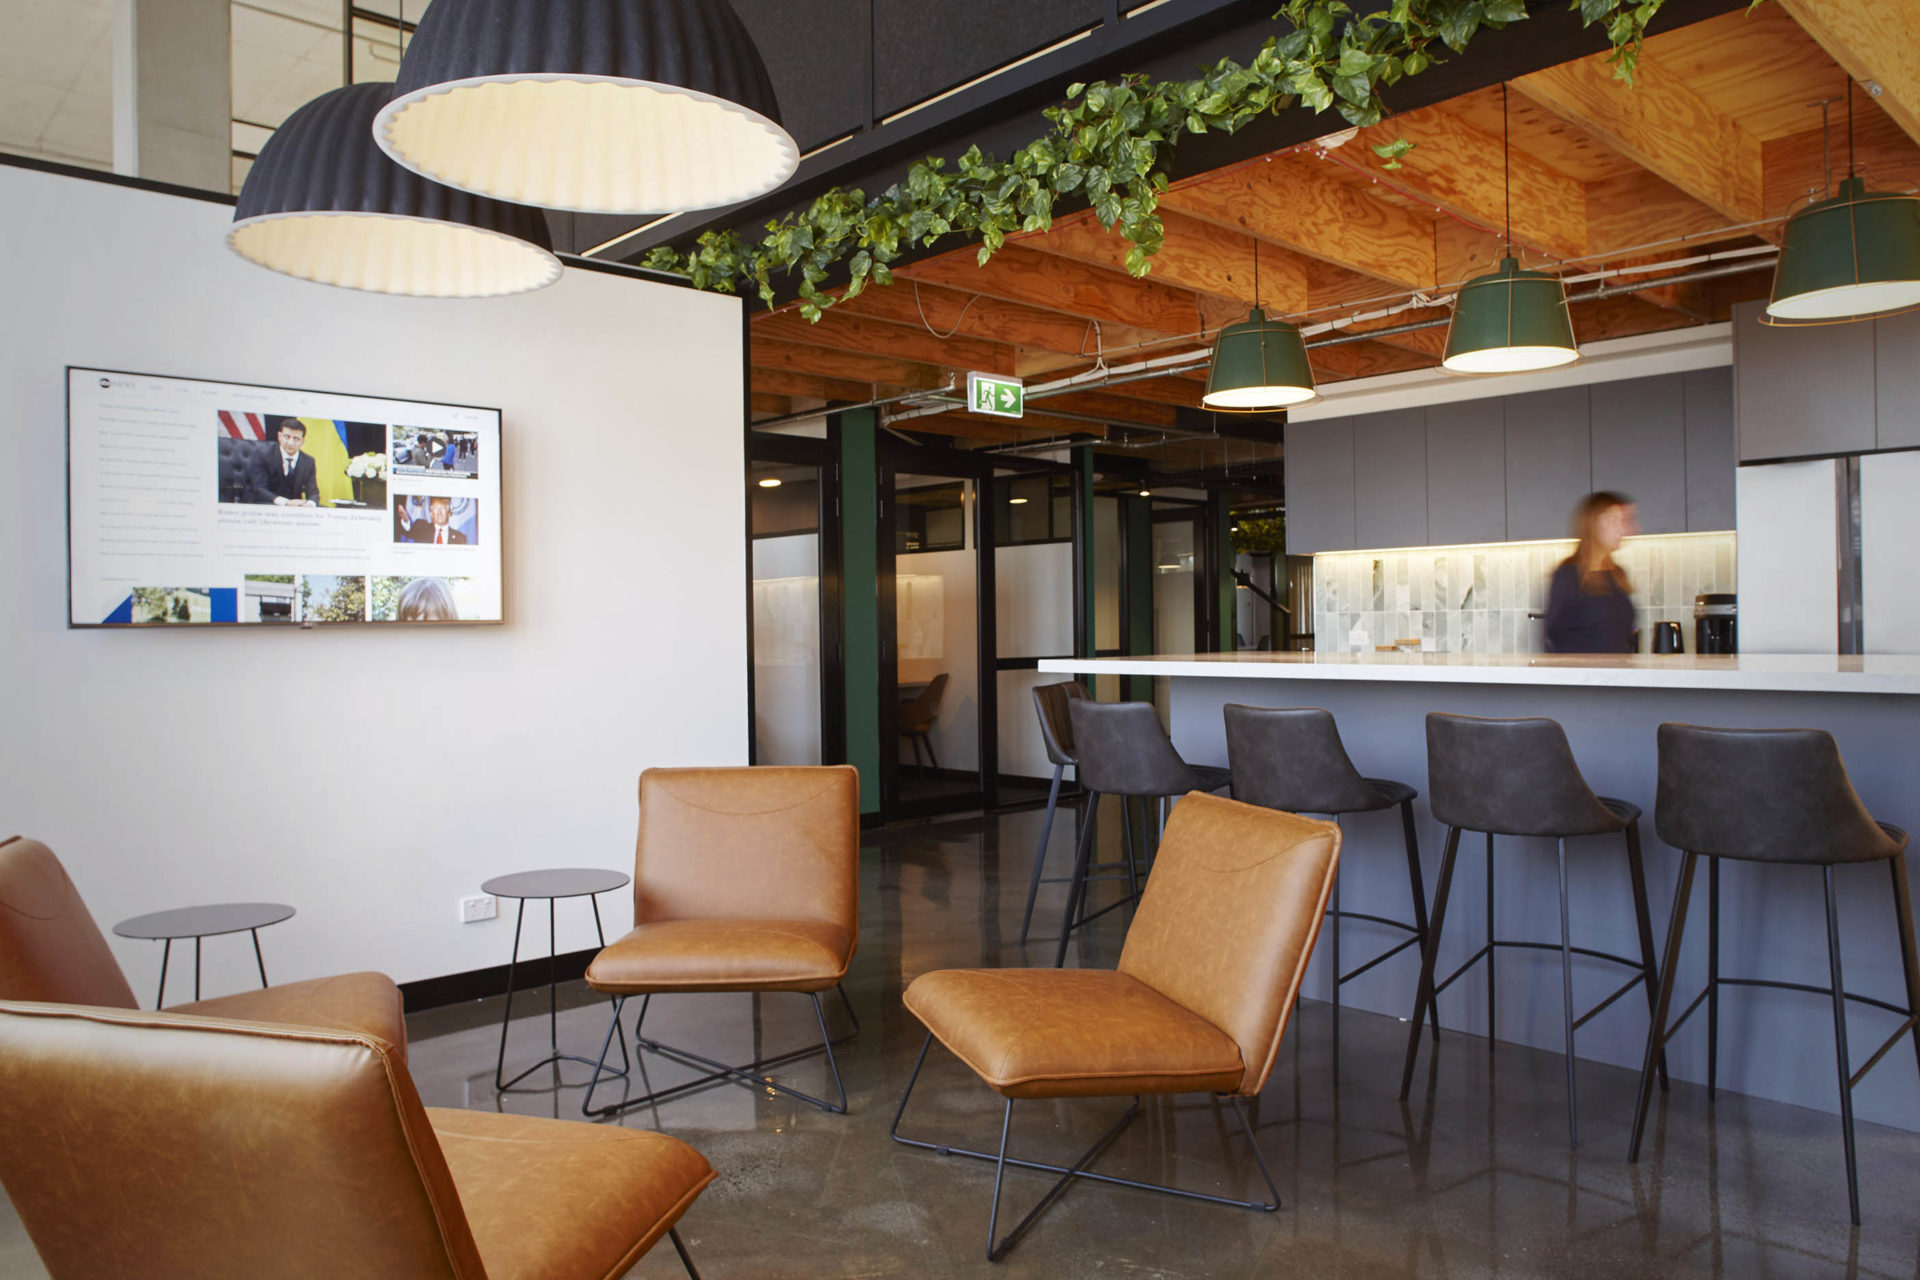 kitchen, breakout, breakout area, collaborative, richmond, cremorne, Coworking, Shared Office Space, Flexible Office Space, Premium, Professional.